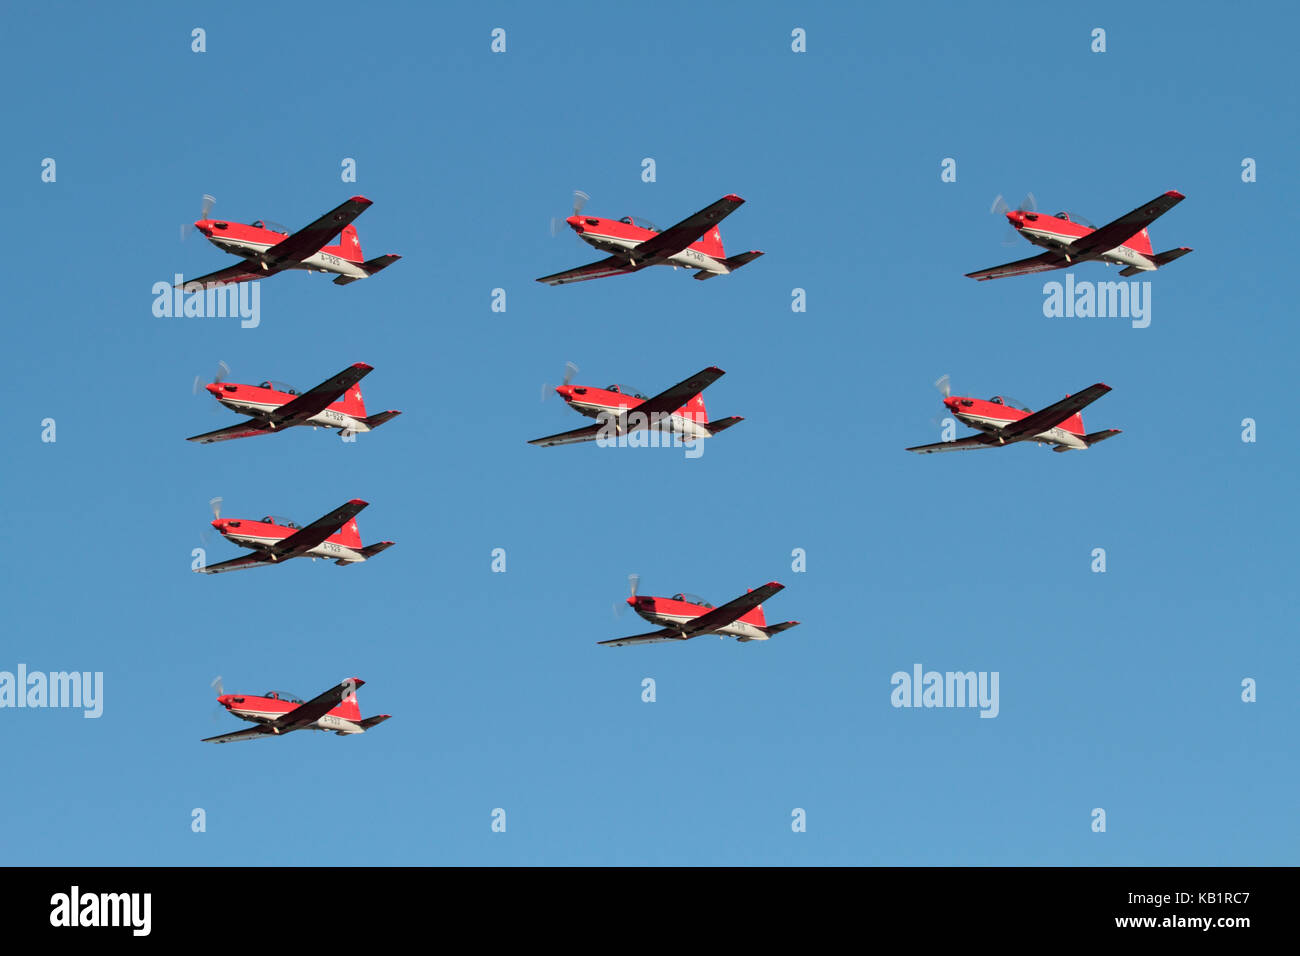 The Swiss Air Force PC-7 aerobatic display team flying in formation - Stock Image